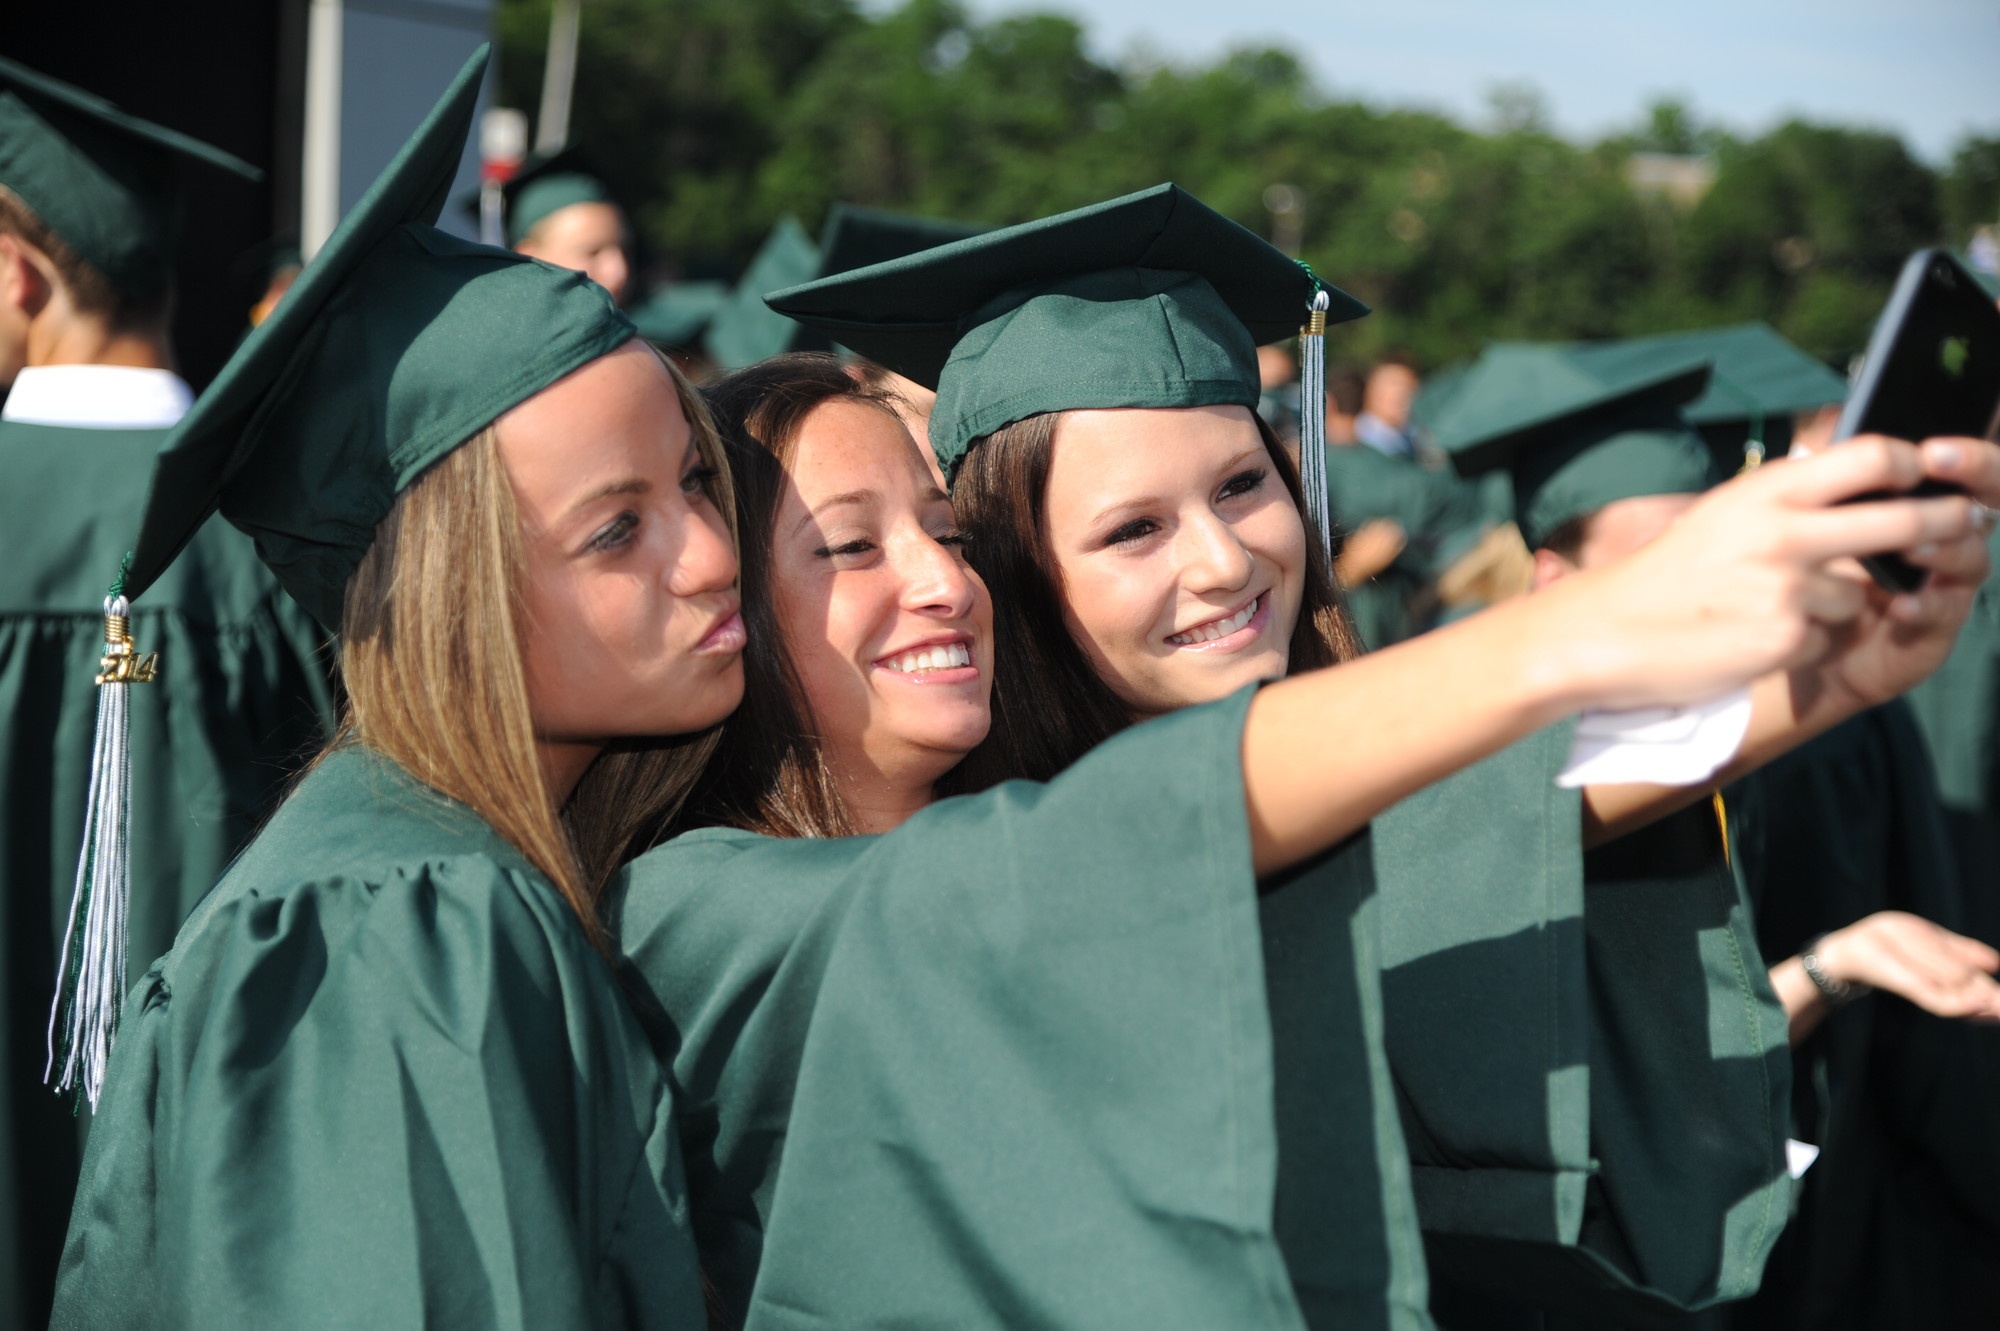 Shooting a selfie were, from left, Carly Grisar, 17, Brooke Gossert, 17, and Isabelle Greenbaum, 18.